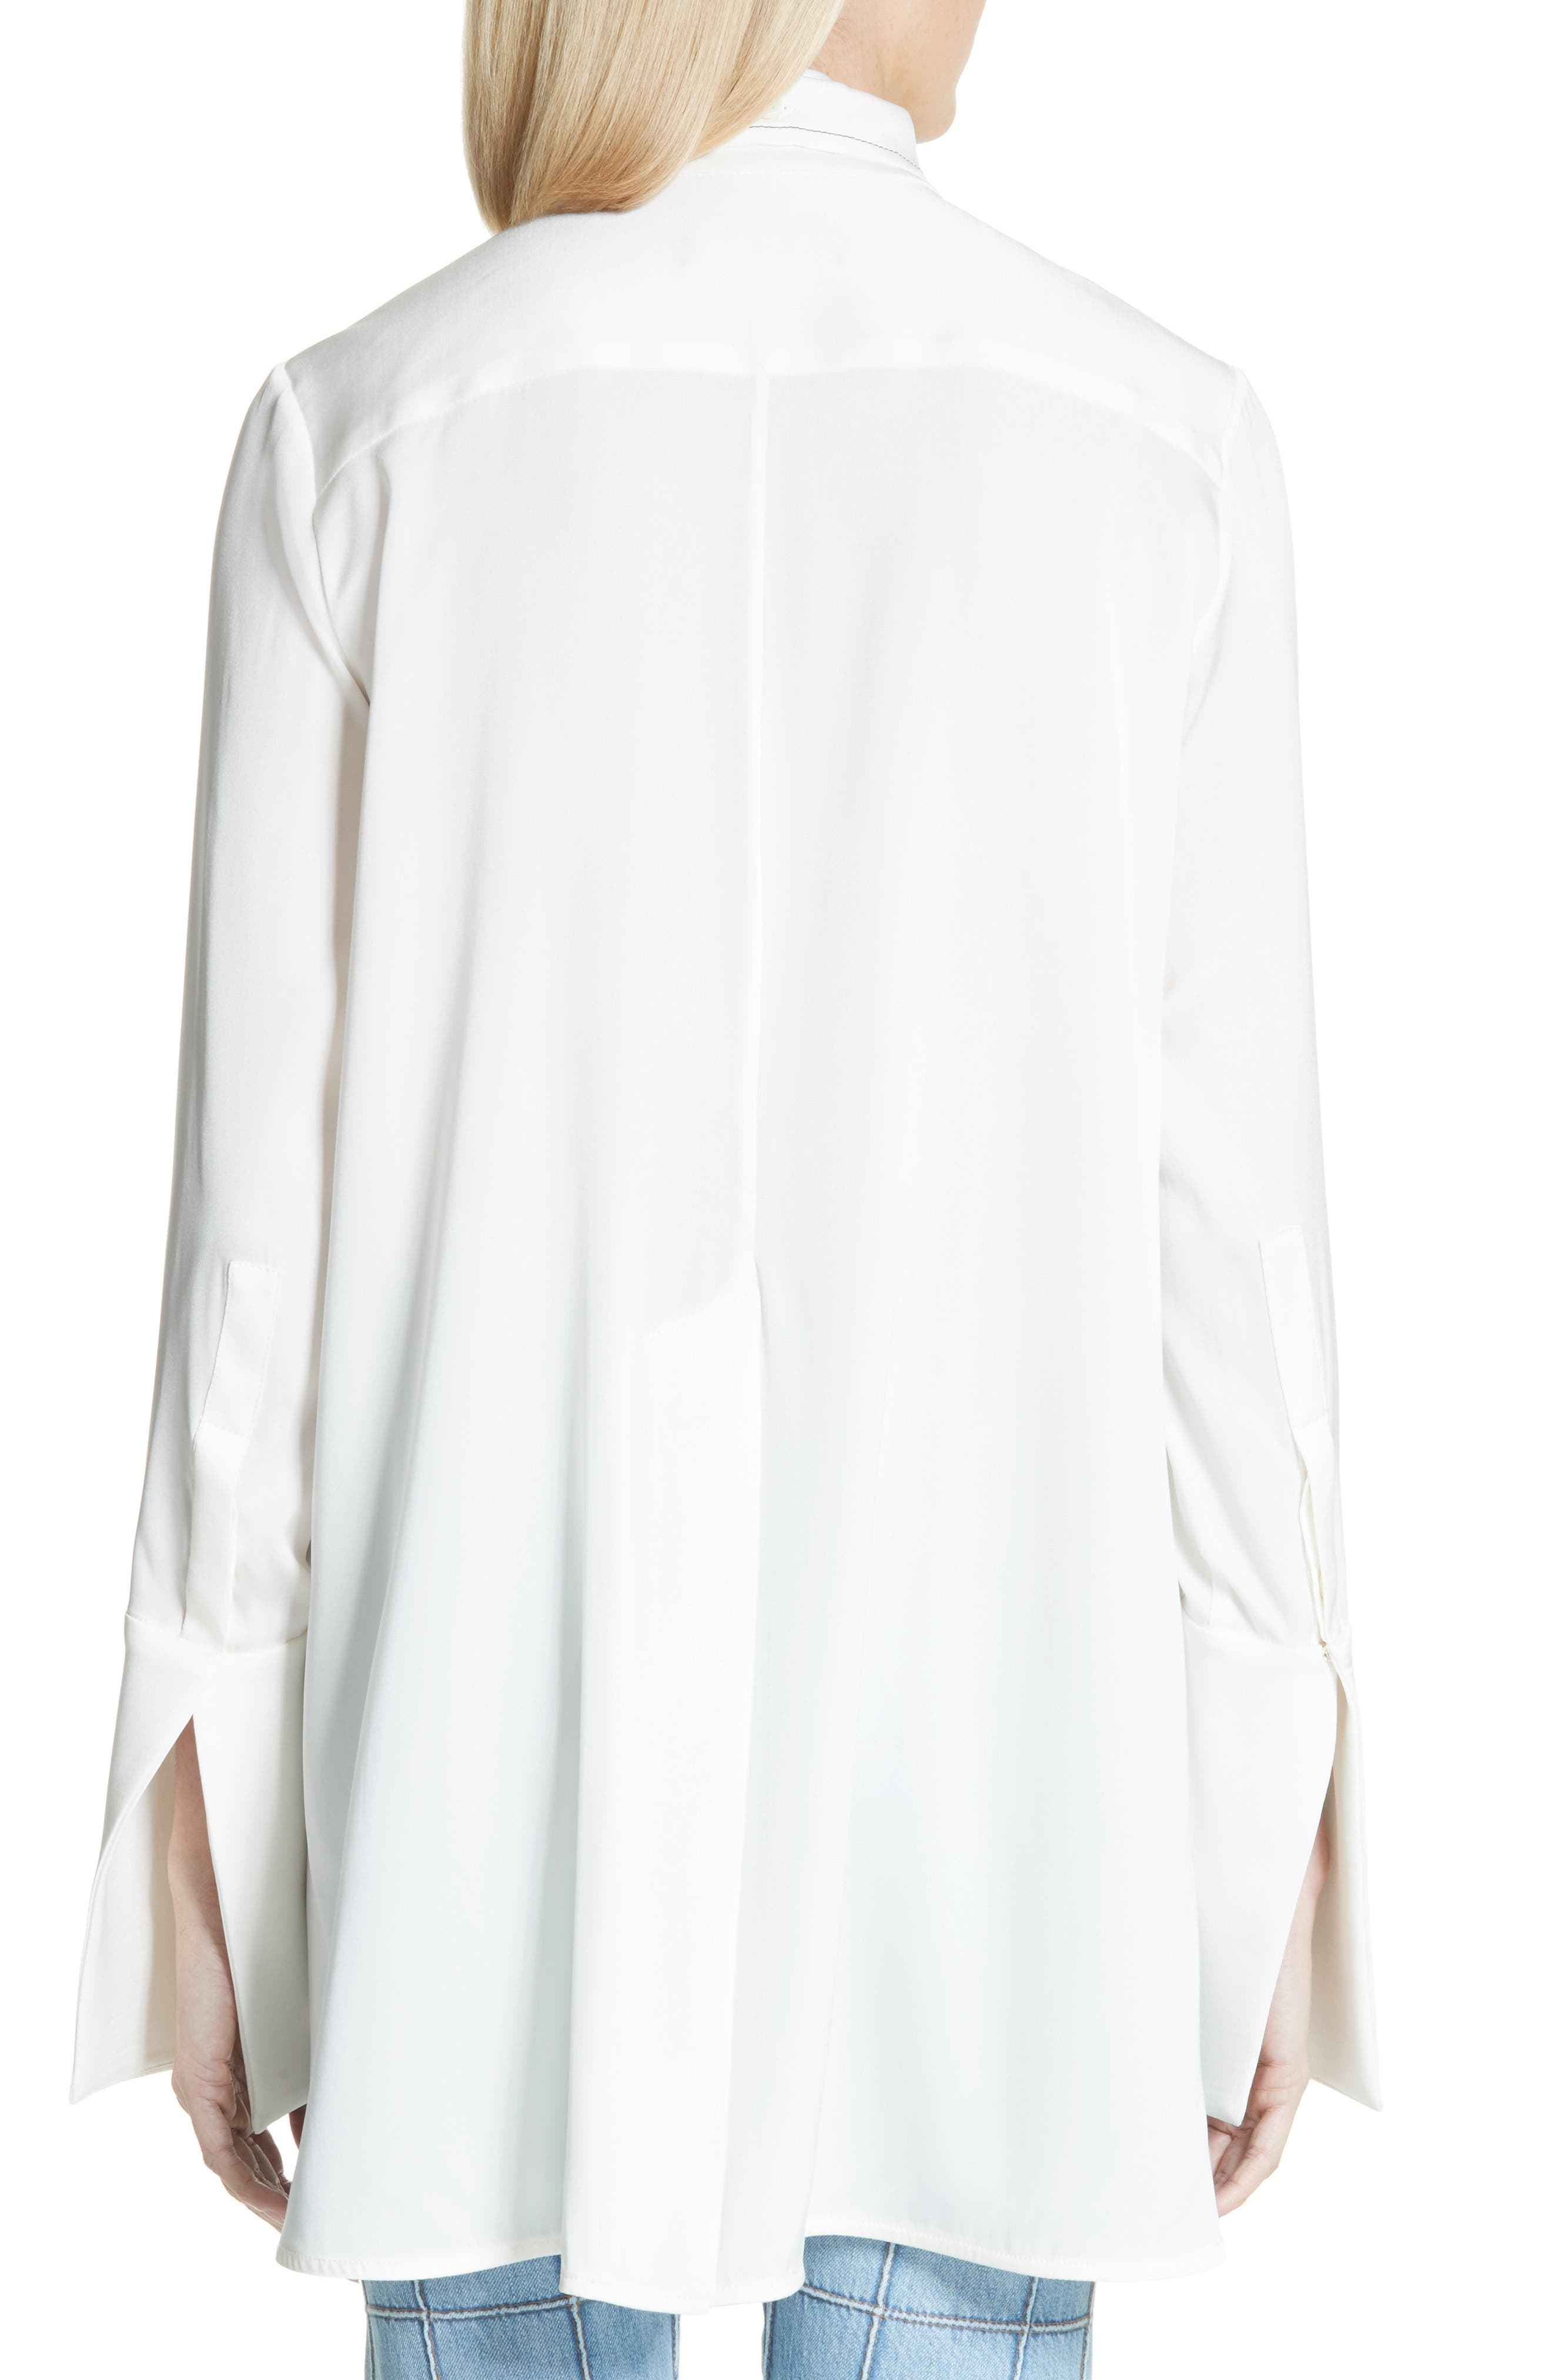 Ride Lonesome Tie Neck Blouse,                             Alternate thumbnail 2, color,                             Ivory